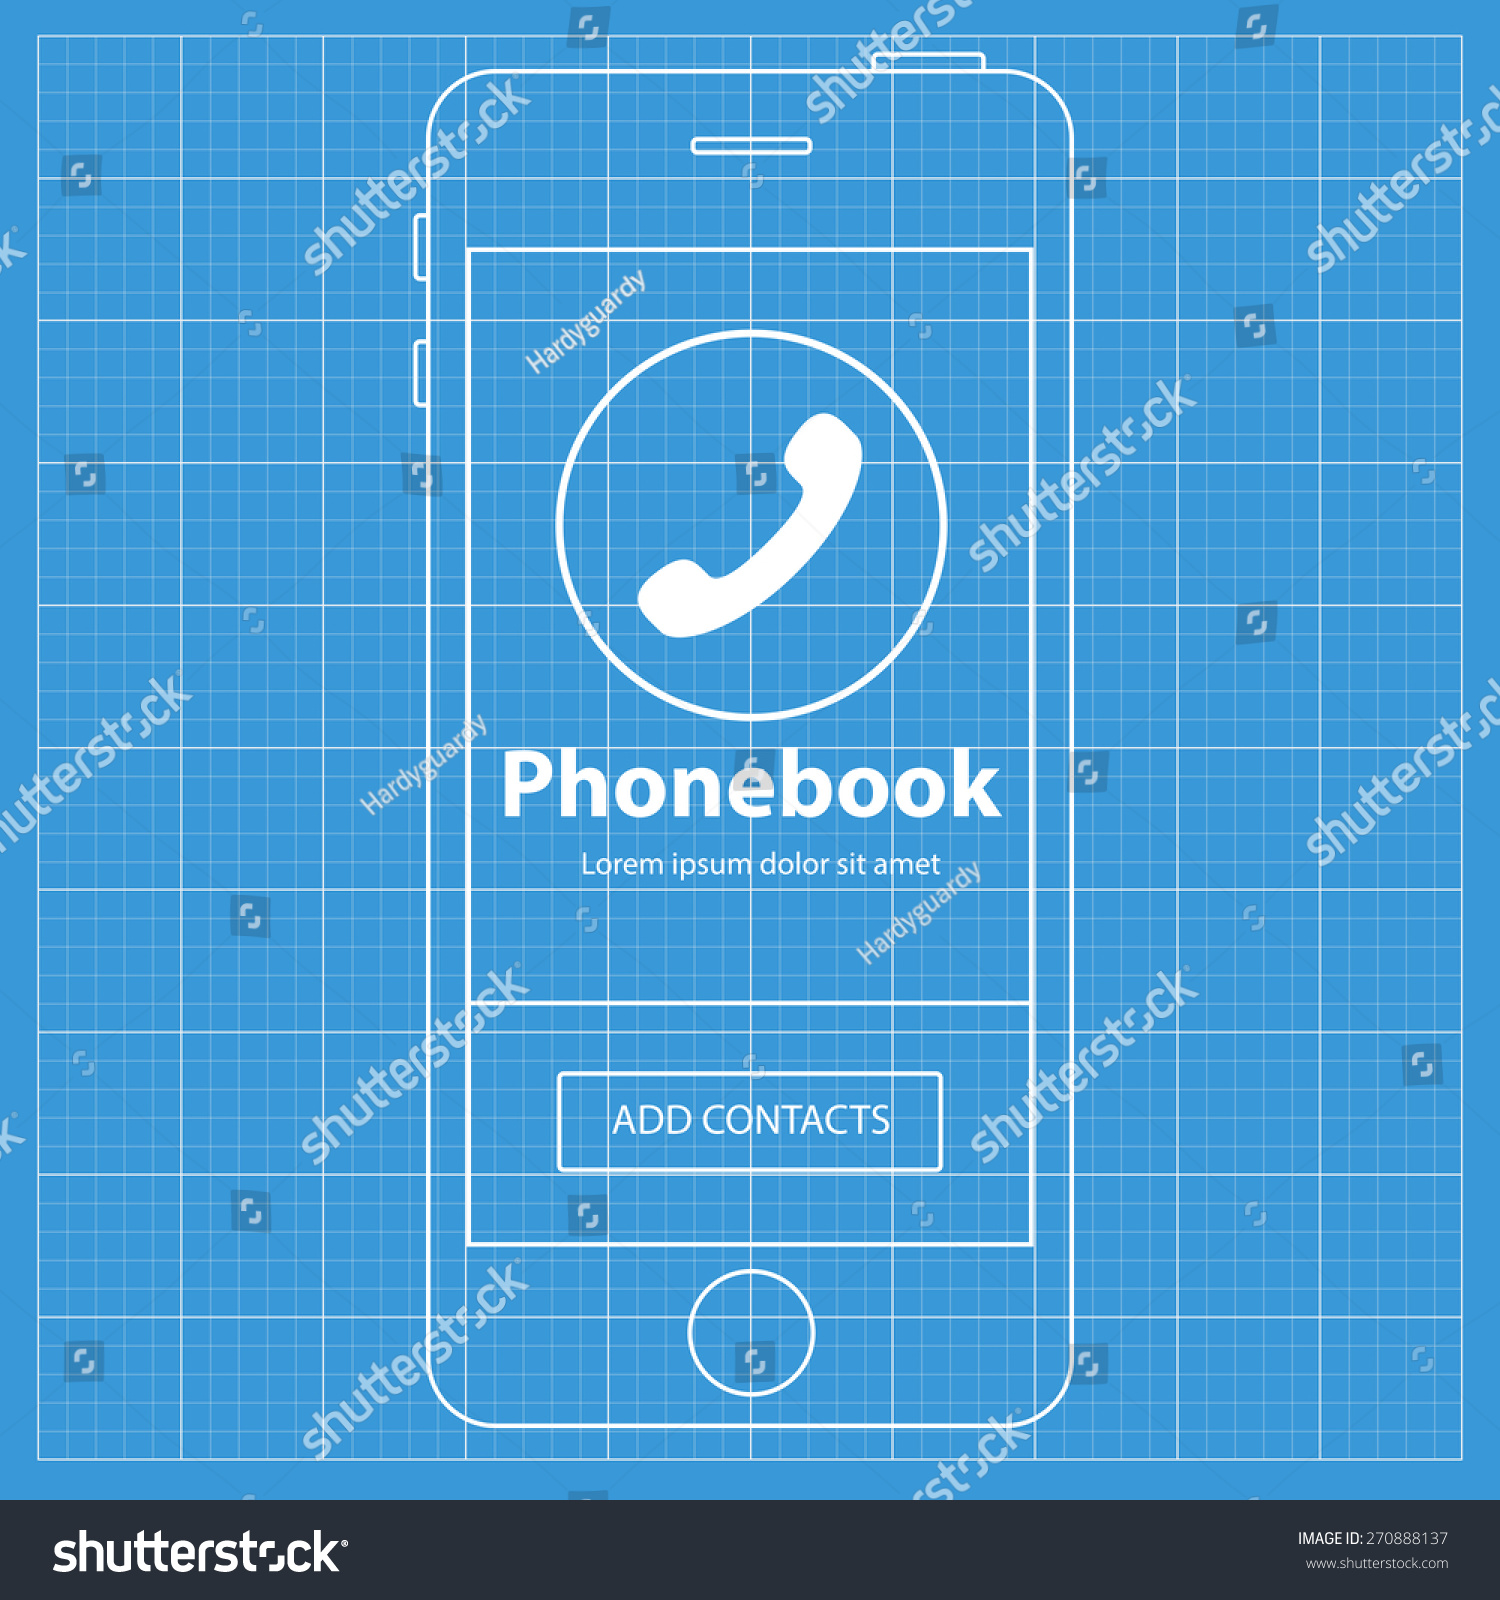 Mobile blueprint wireframe app screen phonebook vectores en stock mobile blueprint wireframe app screen phonebook screen which can be used as a mockup for malvernweather Images